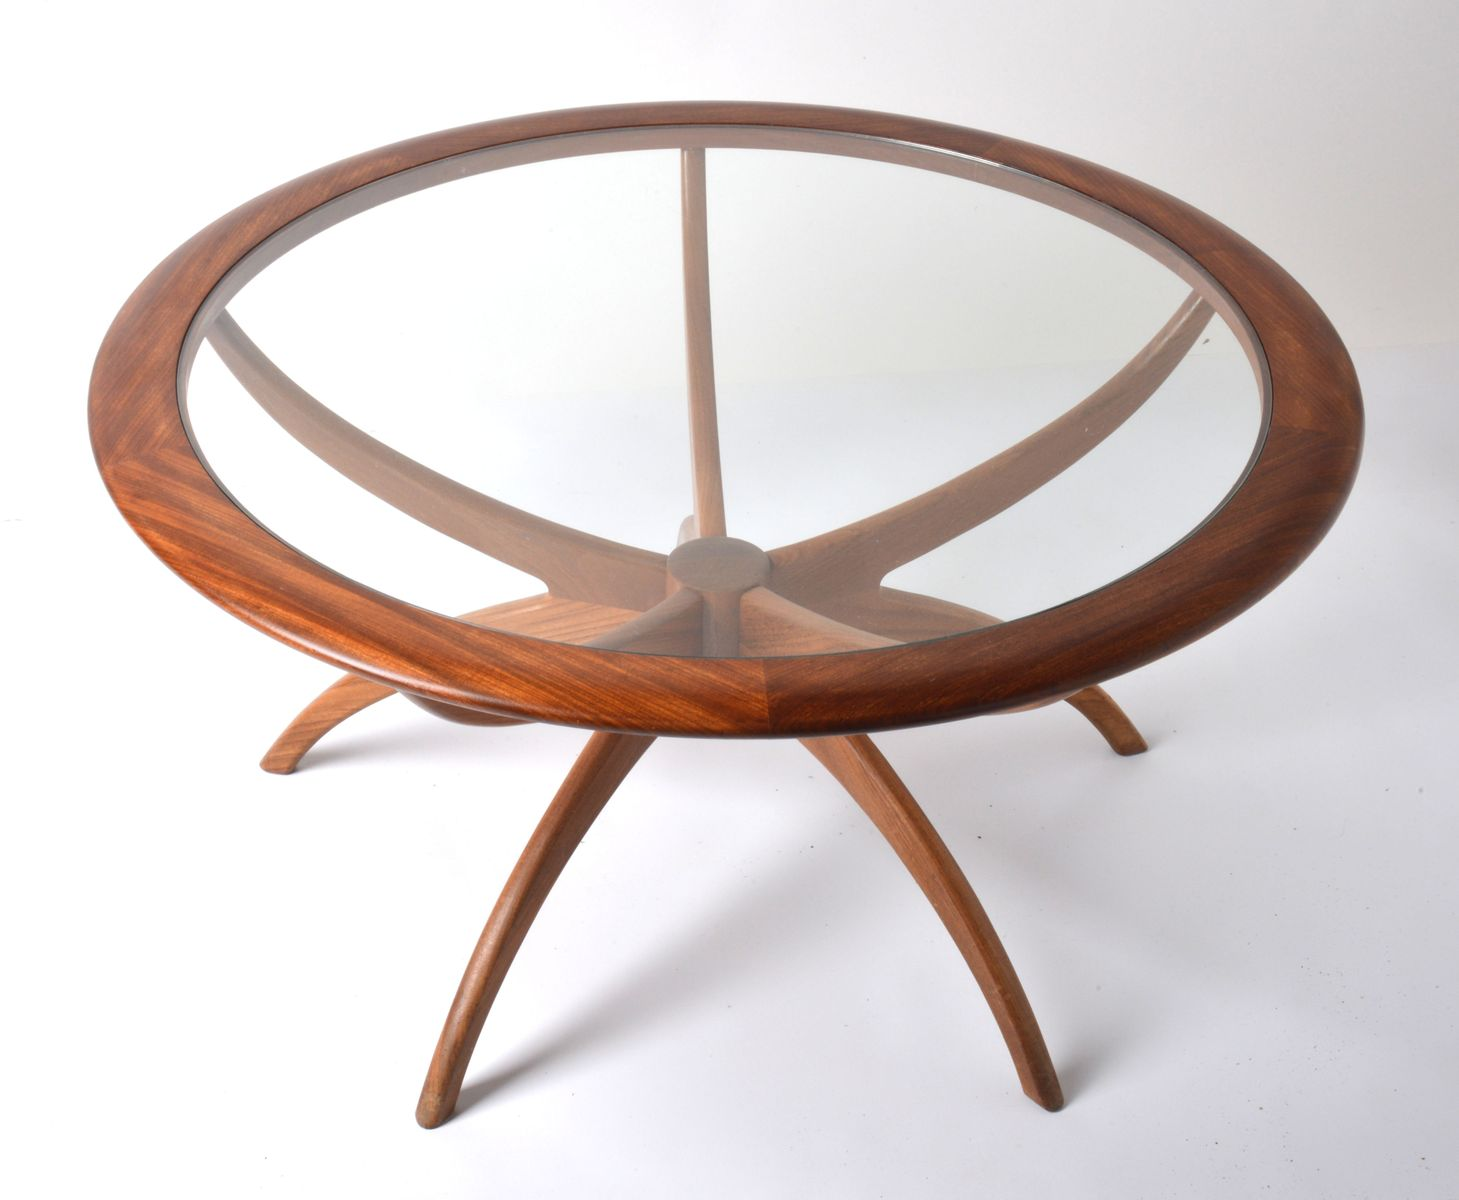 Spider coffee table by victor wilkins for g plan 1960s for sale spider coffee table by victor wilkins for g plan 1960s geotapseo Images